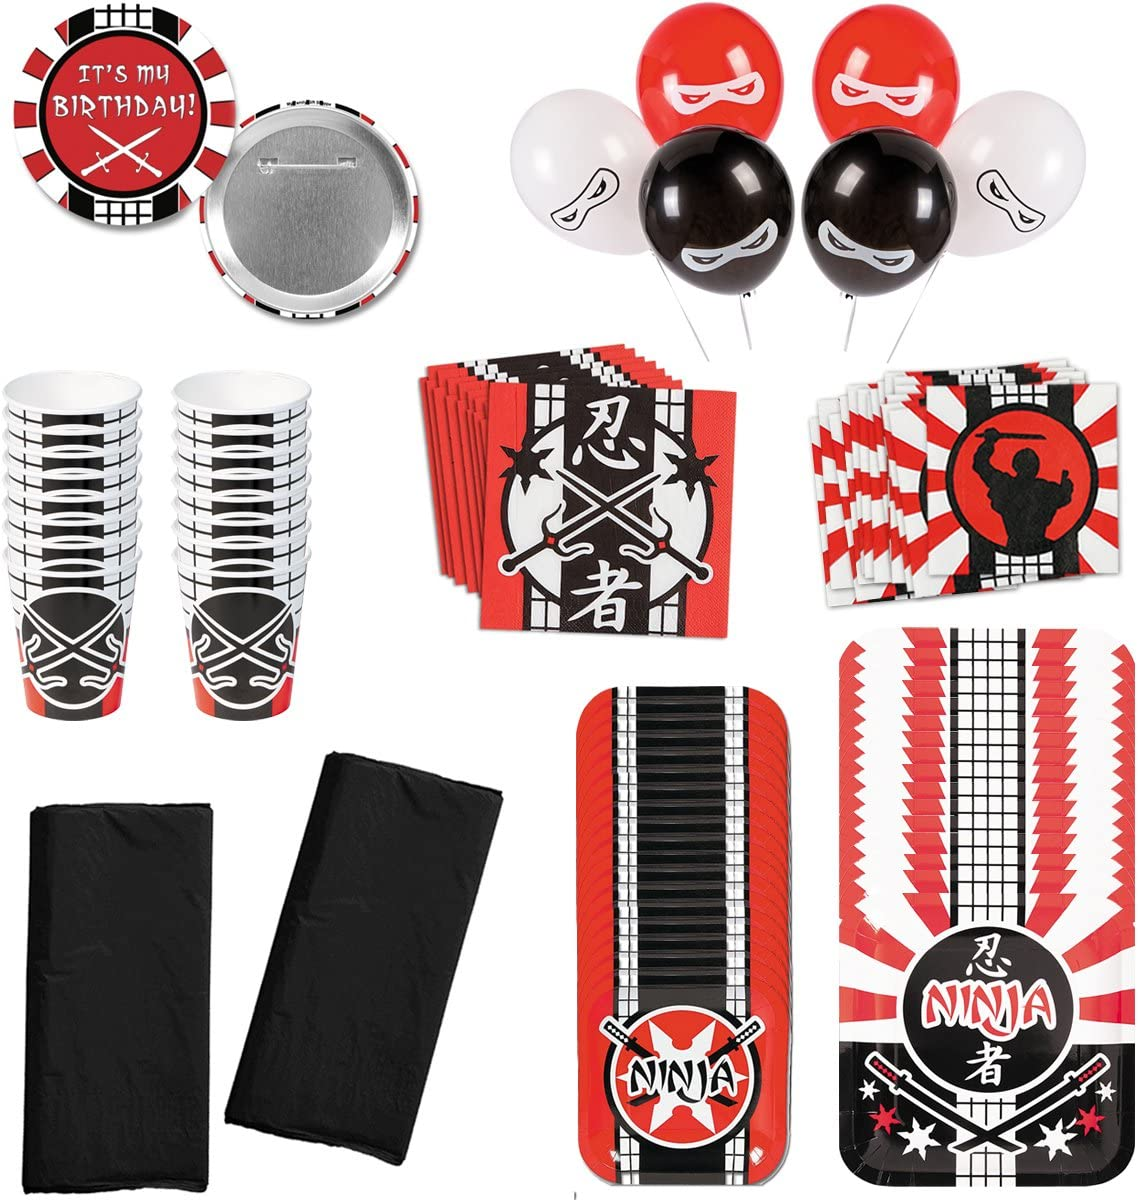 Ninja Warrior Birthday Party Supplies Pack Deluxe Bundle Kit Including Dinner Plates, Dessert Plates, Cups, Large Napkins, Small Napkins Table covers and Balloons - Serves 16 People …